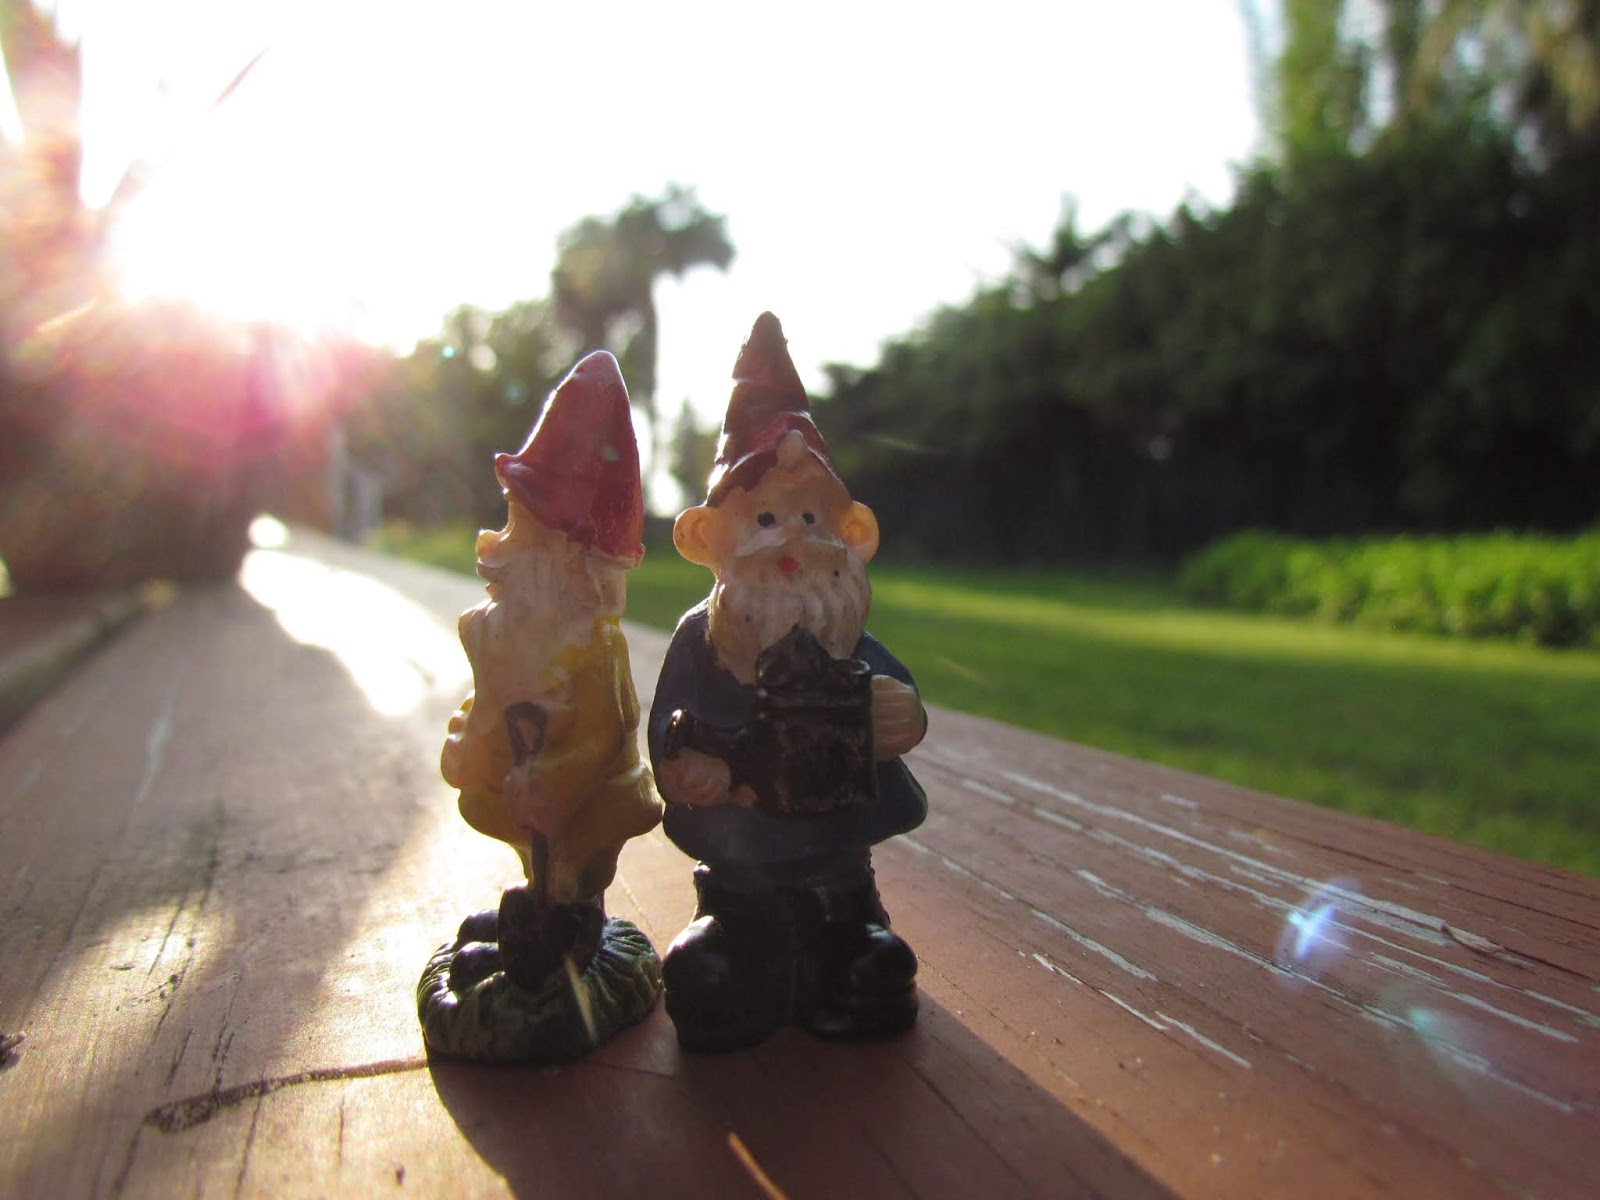 Gnome Love and Brotherhood in the Backyard of a Tropical Florida Backyard at Magic Hour